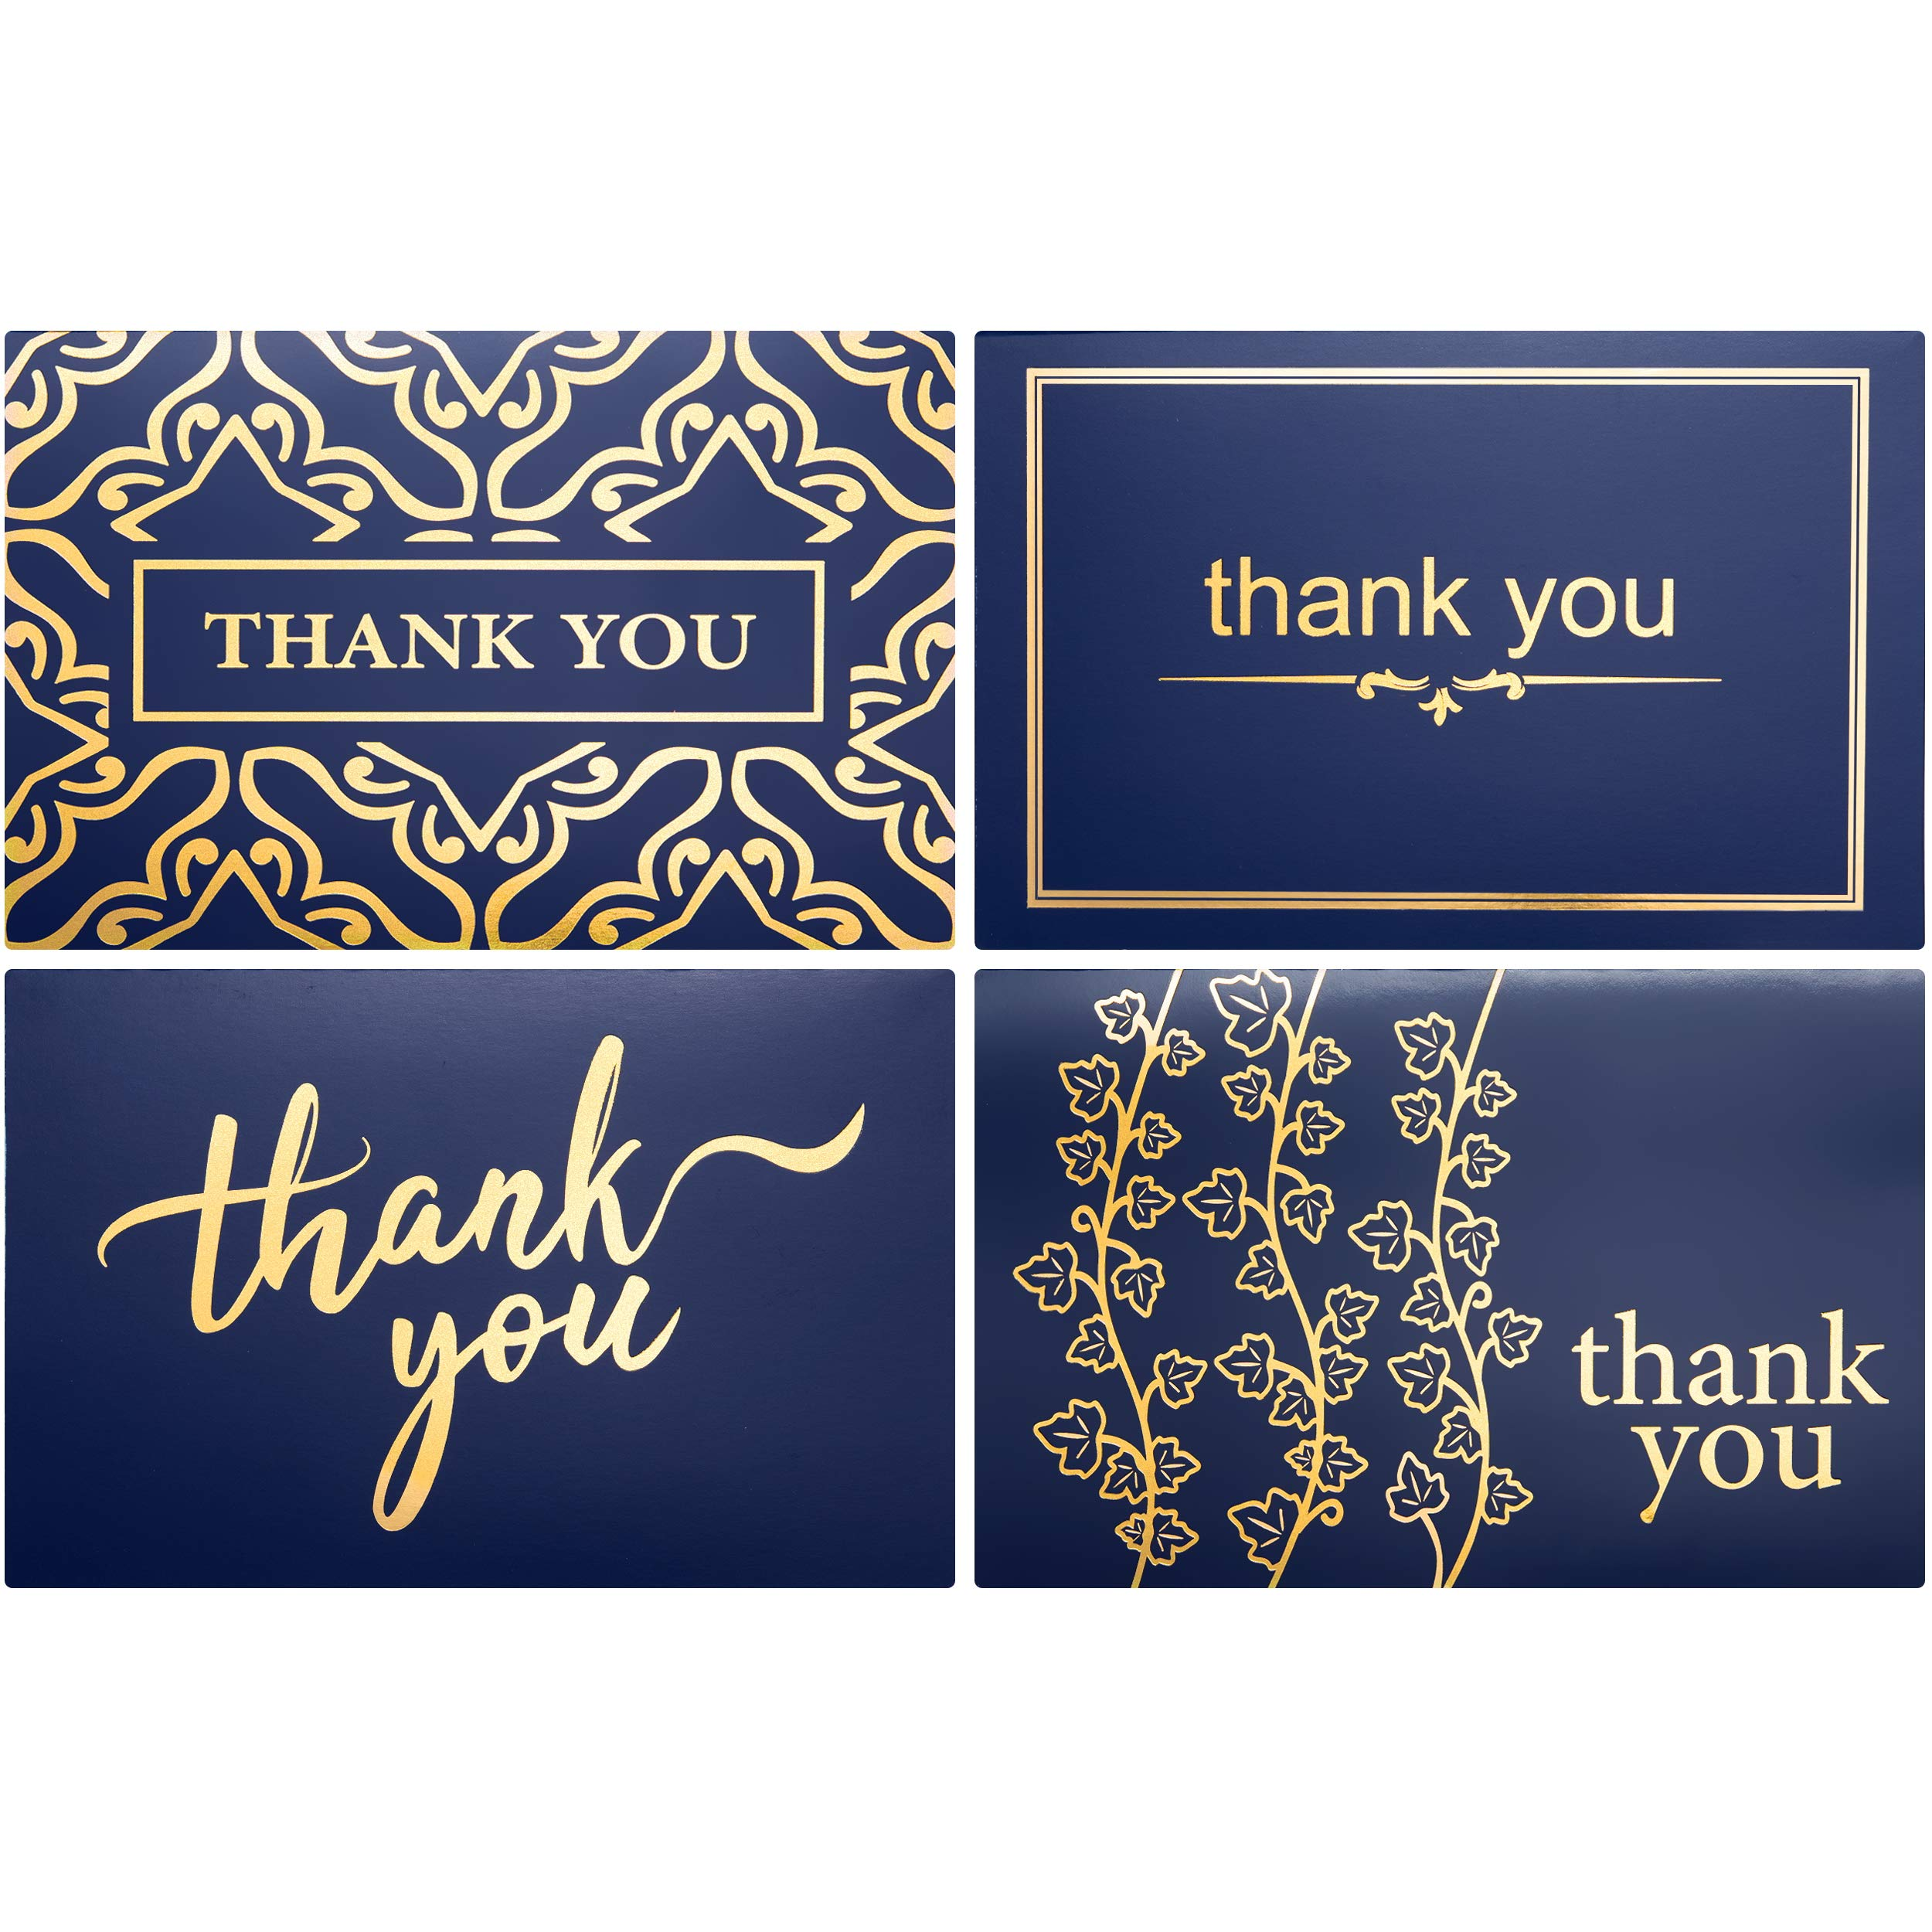 100 Bulk Thank You Cards with Envelopes by Layneria - Gold Foil and Navy Blue card | 4x6 inch Blank notes & white envelope - Perfect for Wedding Business Funeral Graduation Bridal Gift and Baby Shower